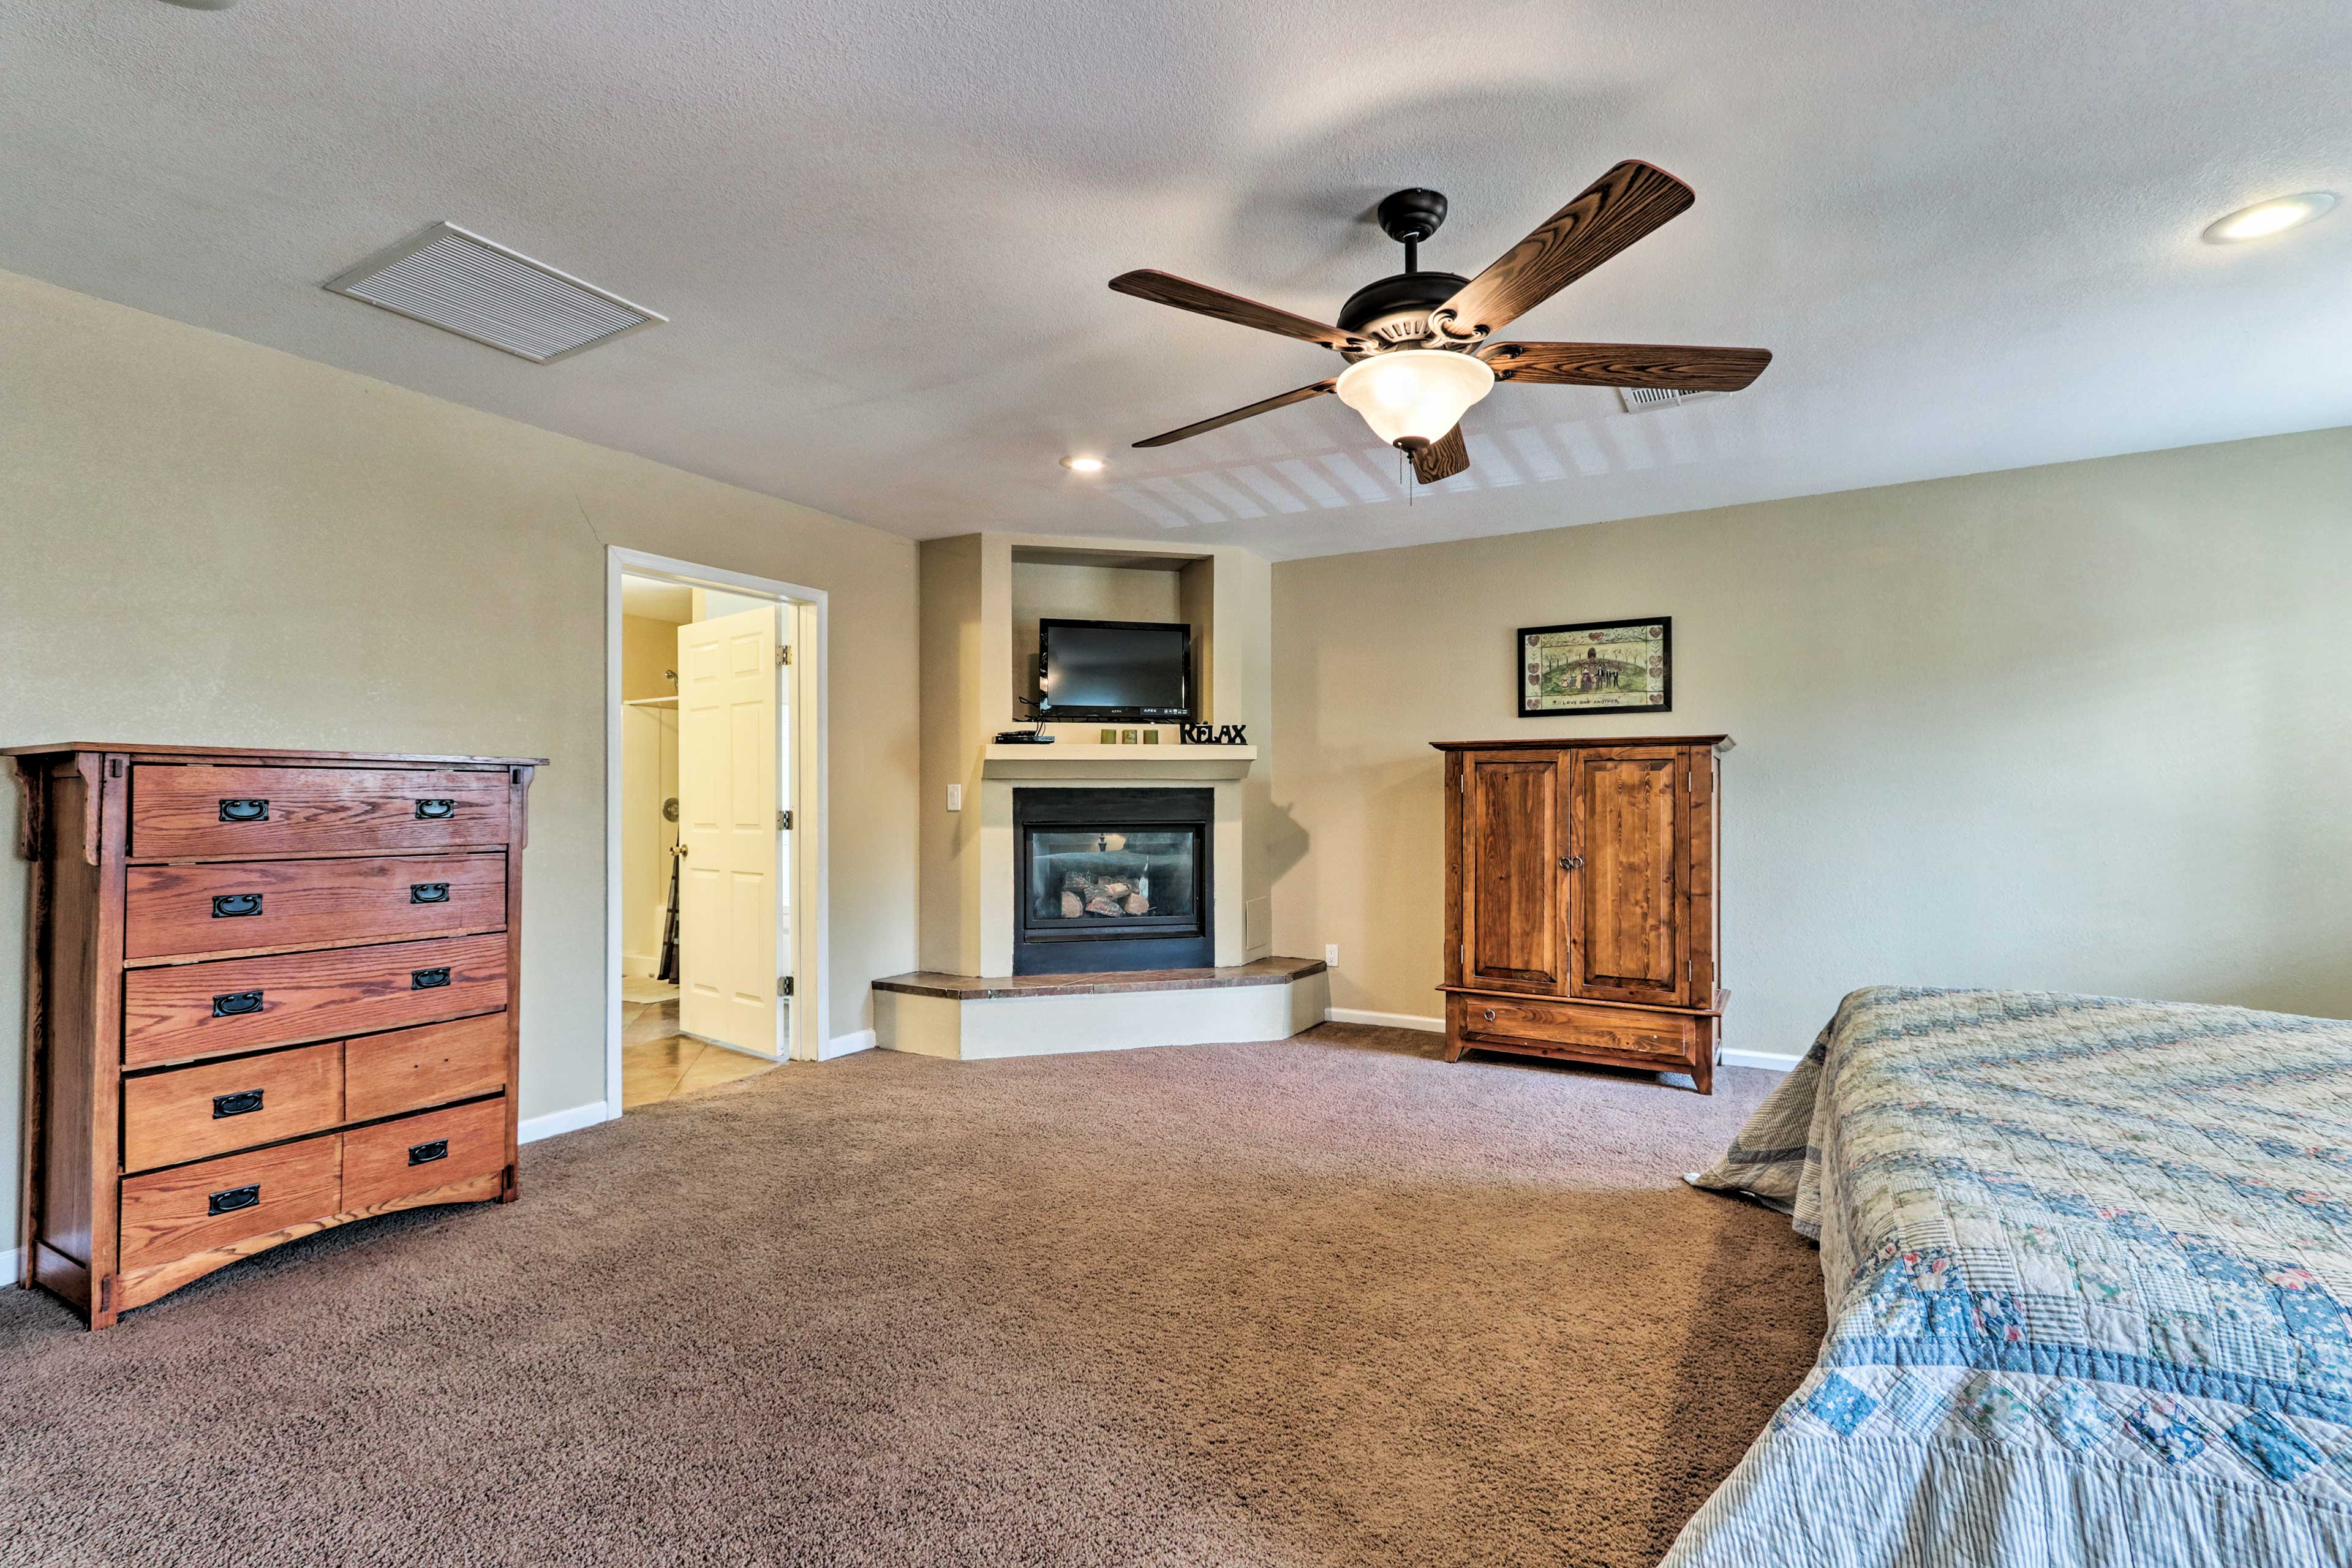 The bedroom hosts a king bed, flat-screen TV and a gas fireplace.